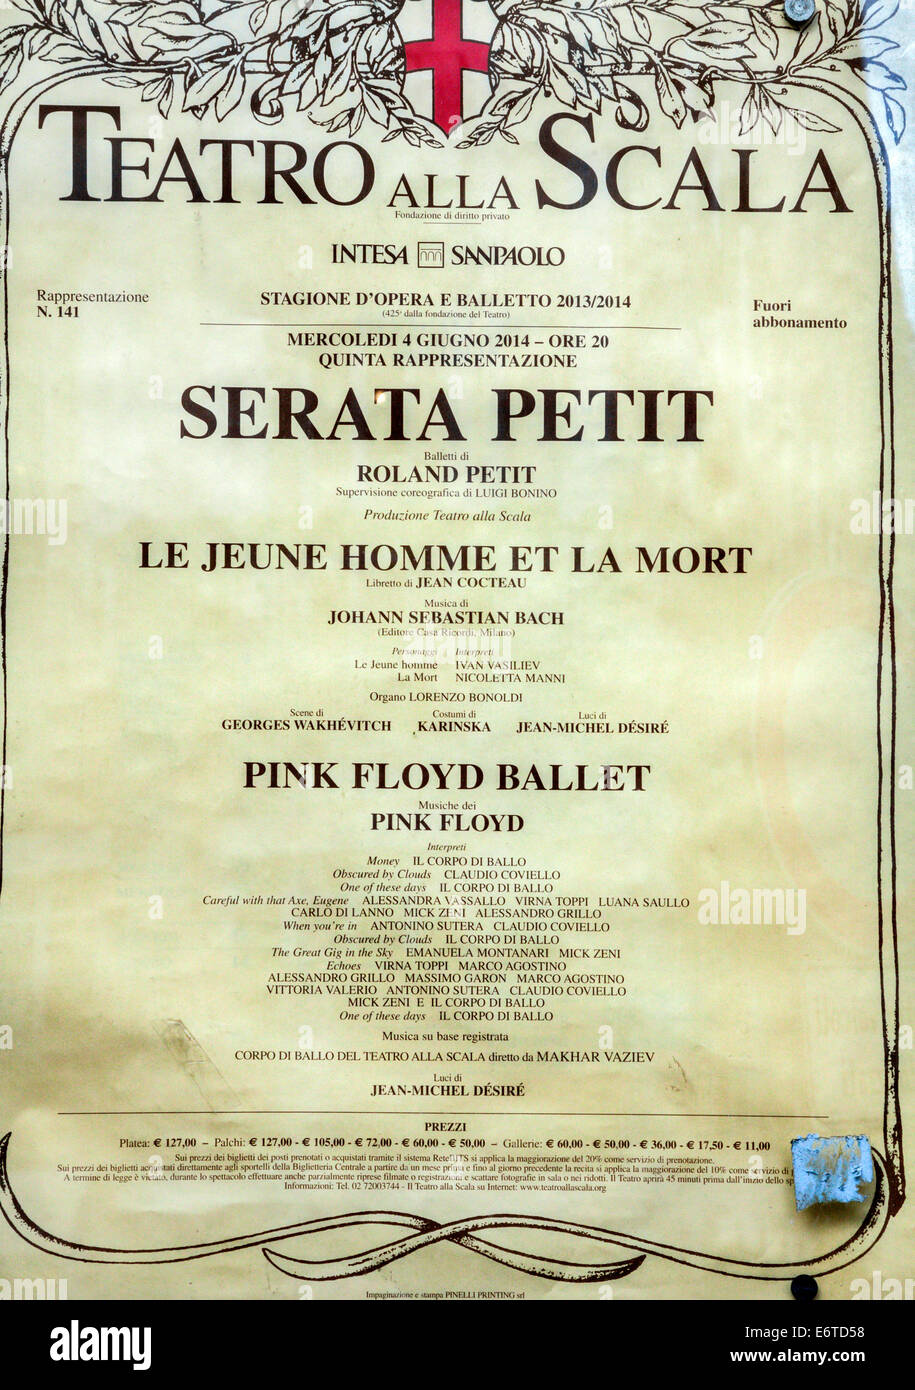 Concert programme for the Teatro all Scala in Milan, Italy - Stock Image